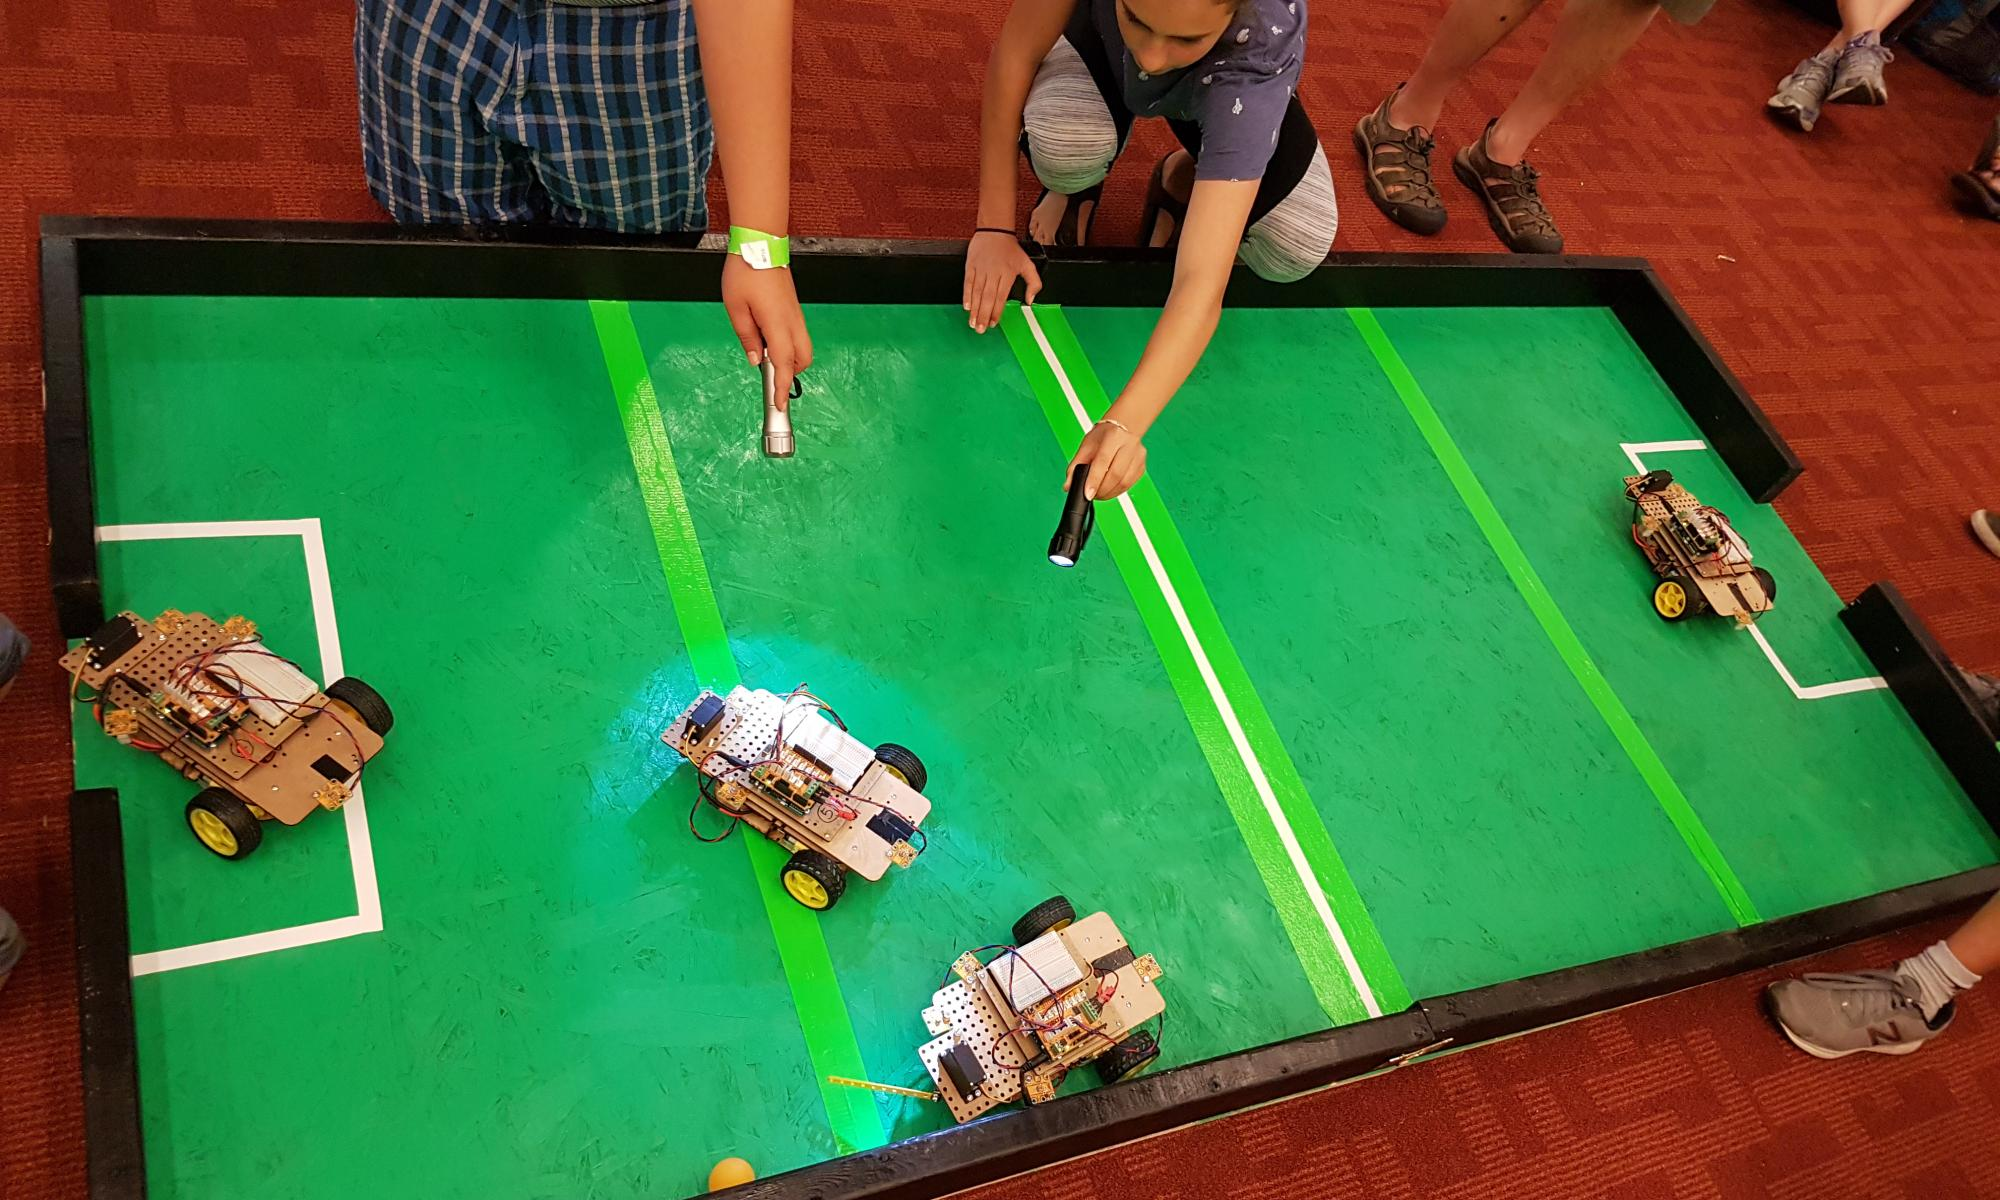 The robot soccer game at Maker Festival 2018.